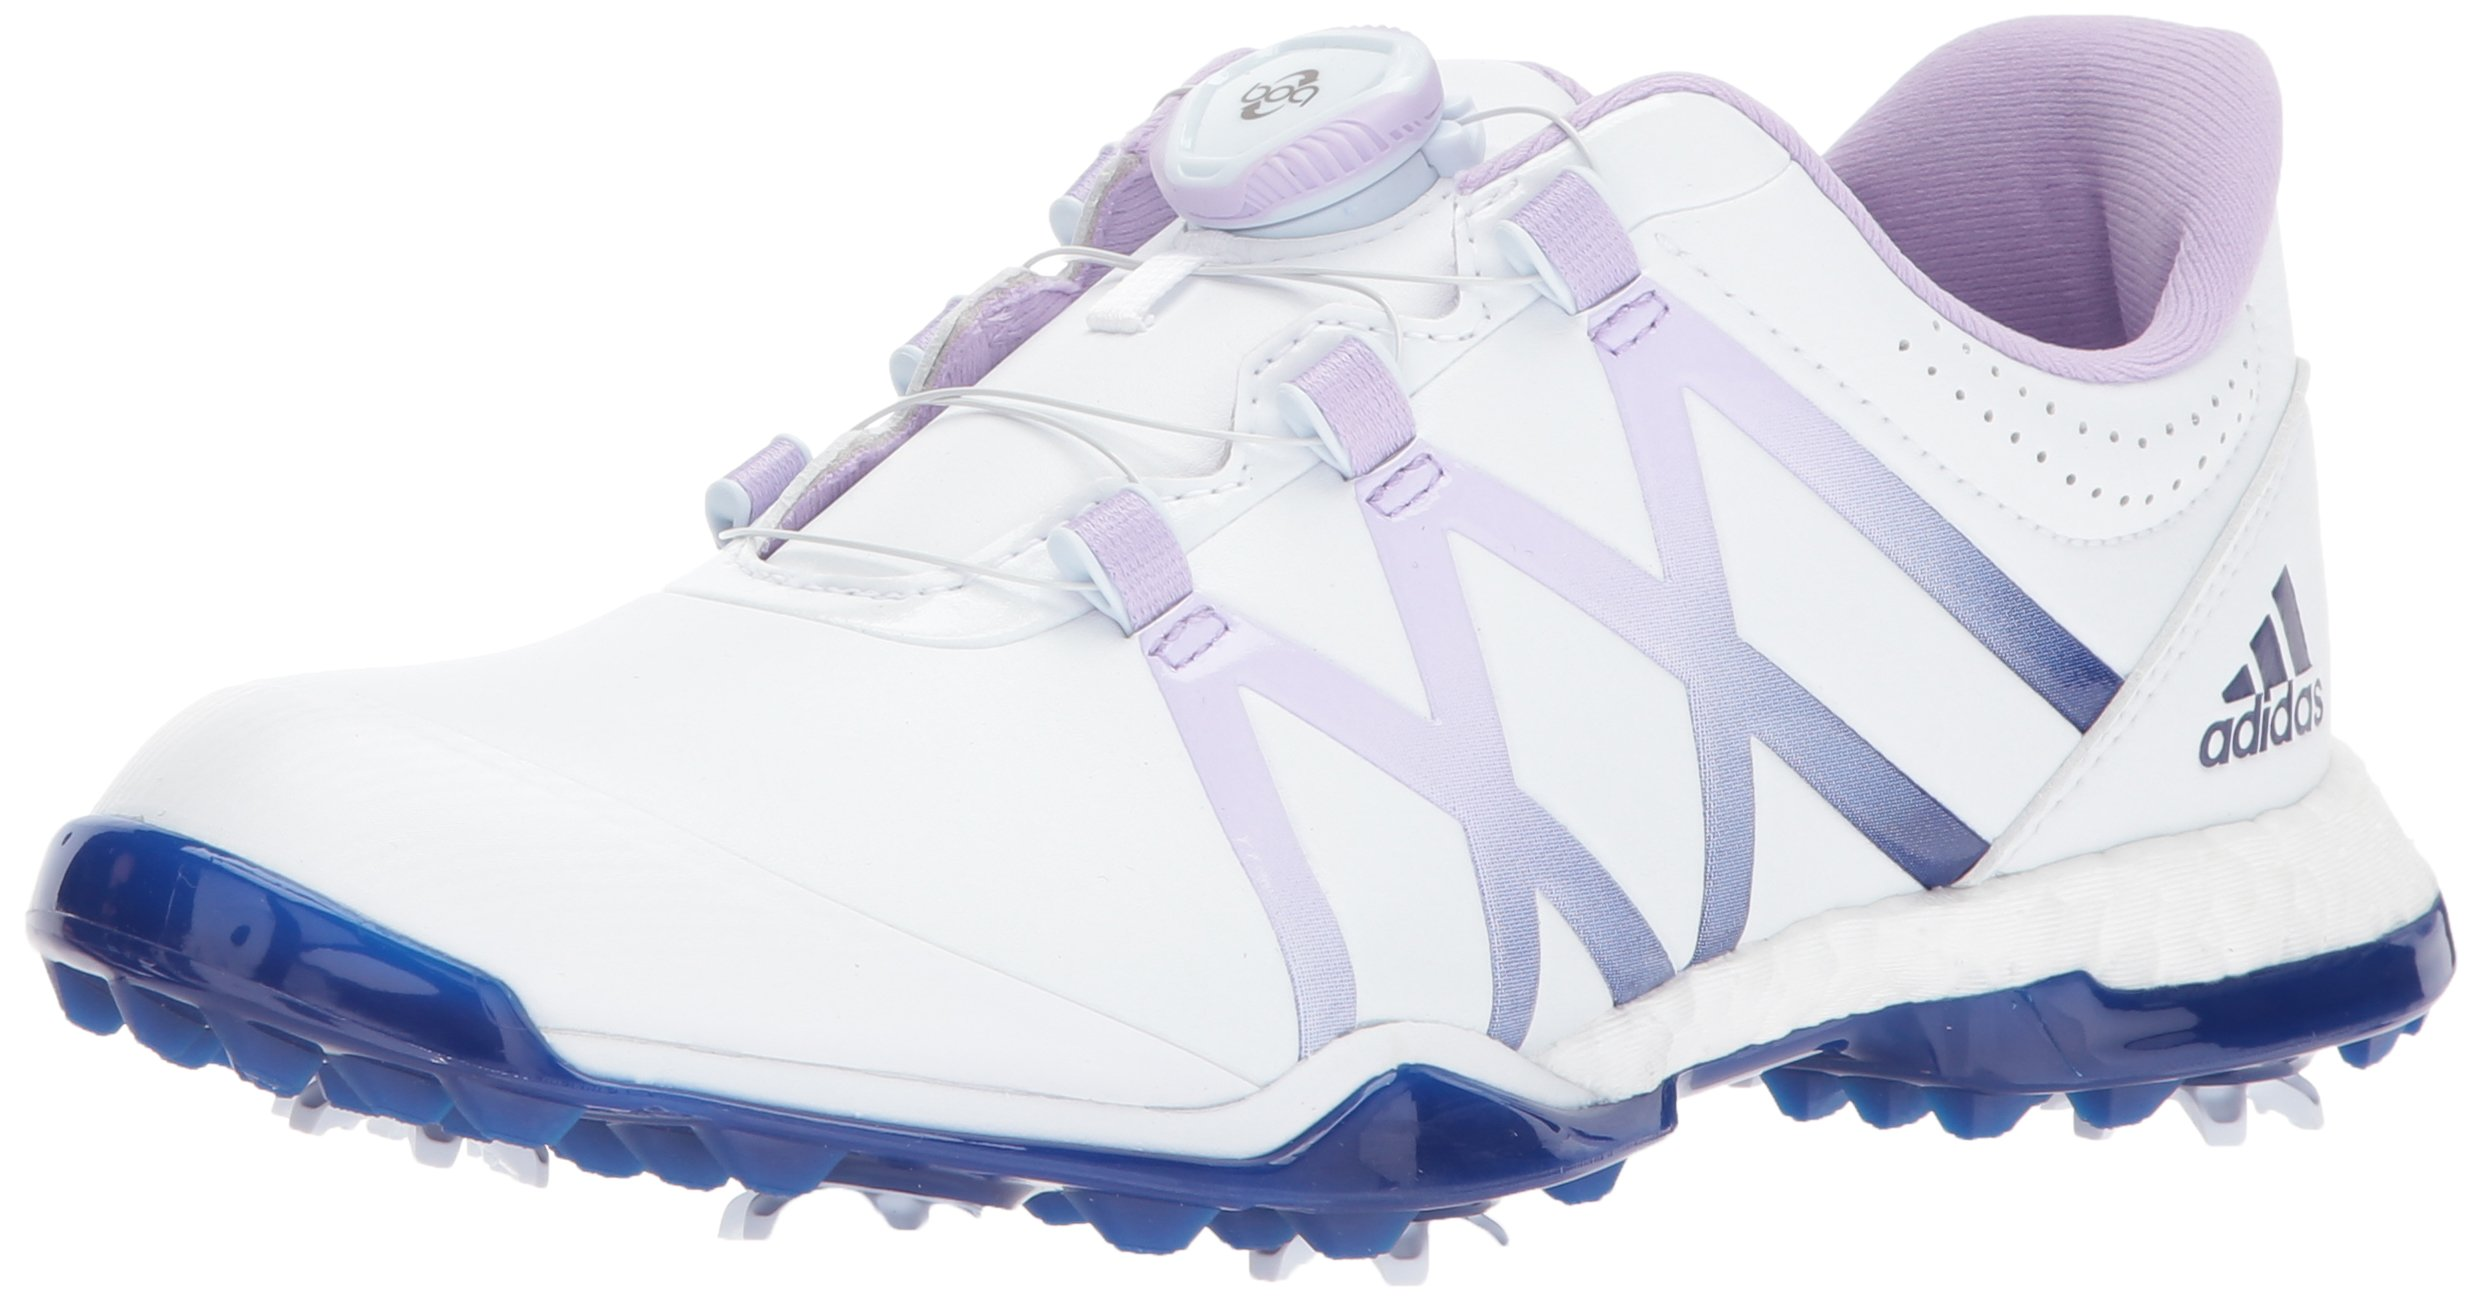 super popular 2150a c1c18 Get Quotations · adidas Womens W Adipower Boost Boa Golf Shoe